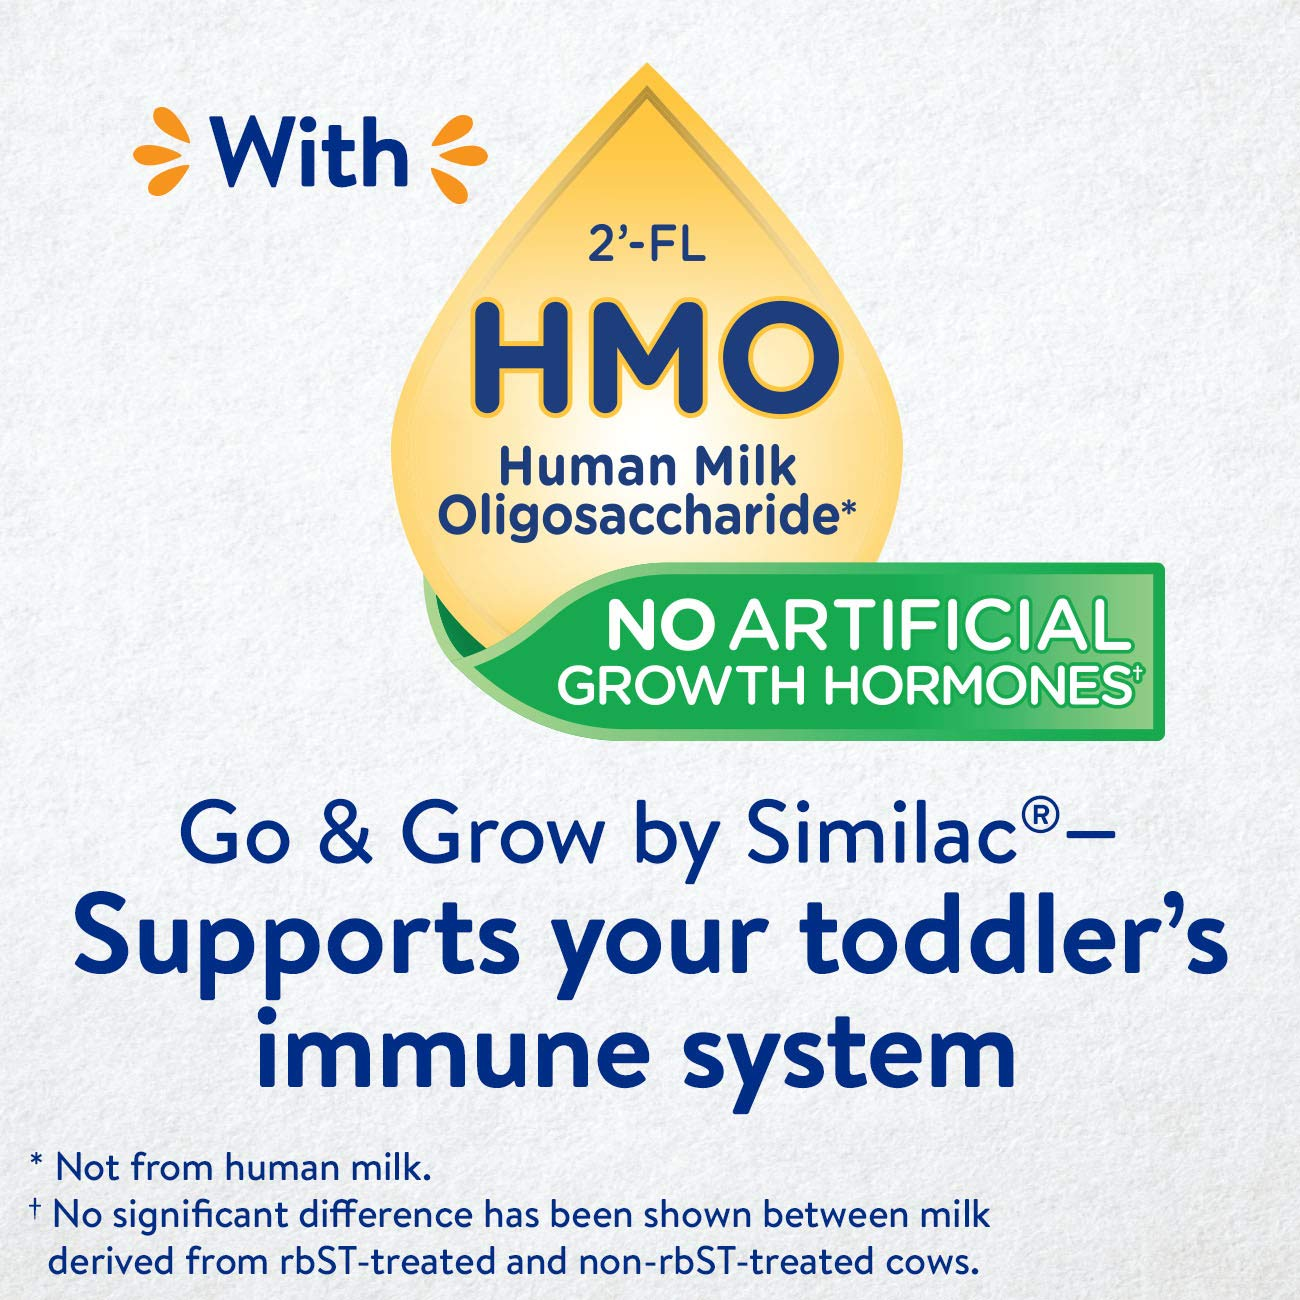 Go & Grow by Similac Non-GMO Toddler Milk-Based Drink with 2'-FL HMO for Immune Support, Powder Stick Packs, 17.4 g, 64 Count by Similac Go & Grow Milk (Image #2)